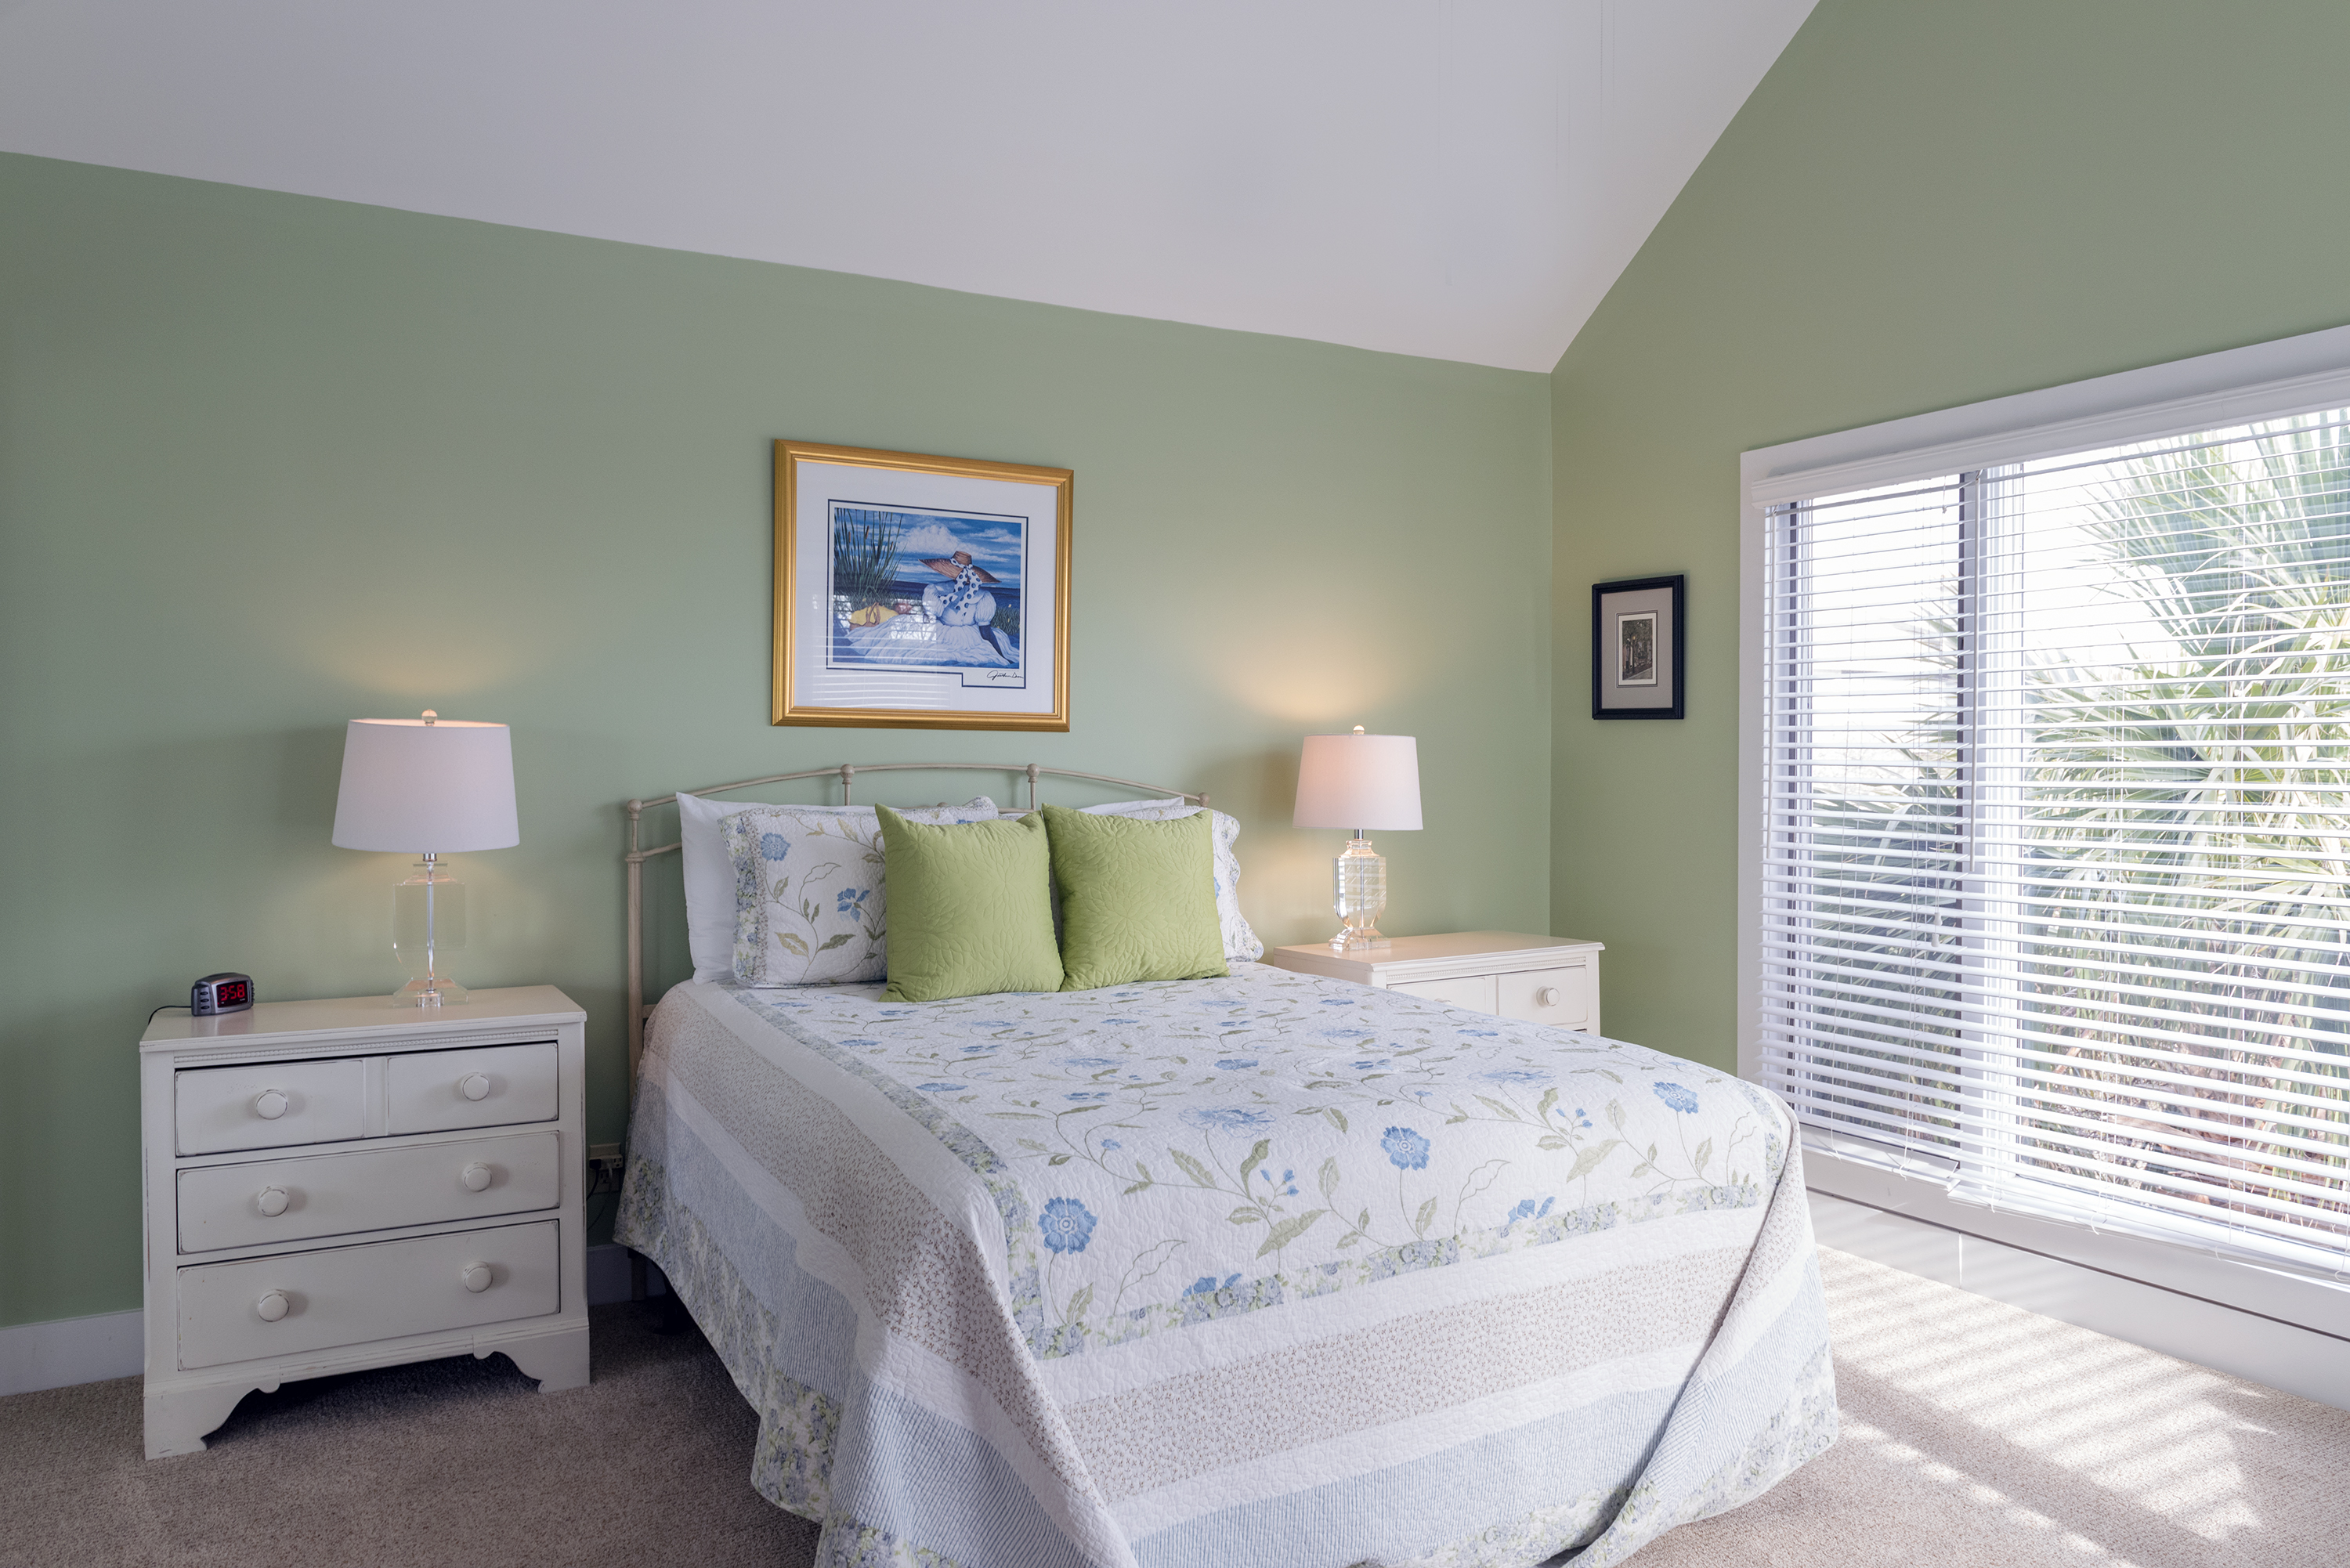 The 2nd floor master bedroom has a queen bed and is located off the main living area.